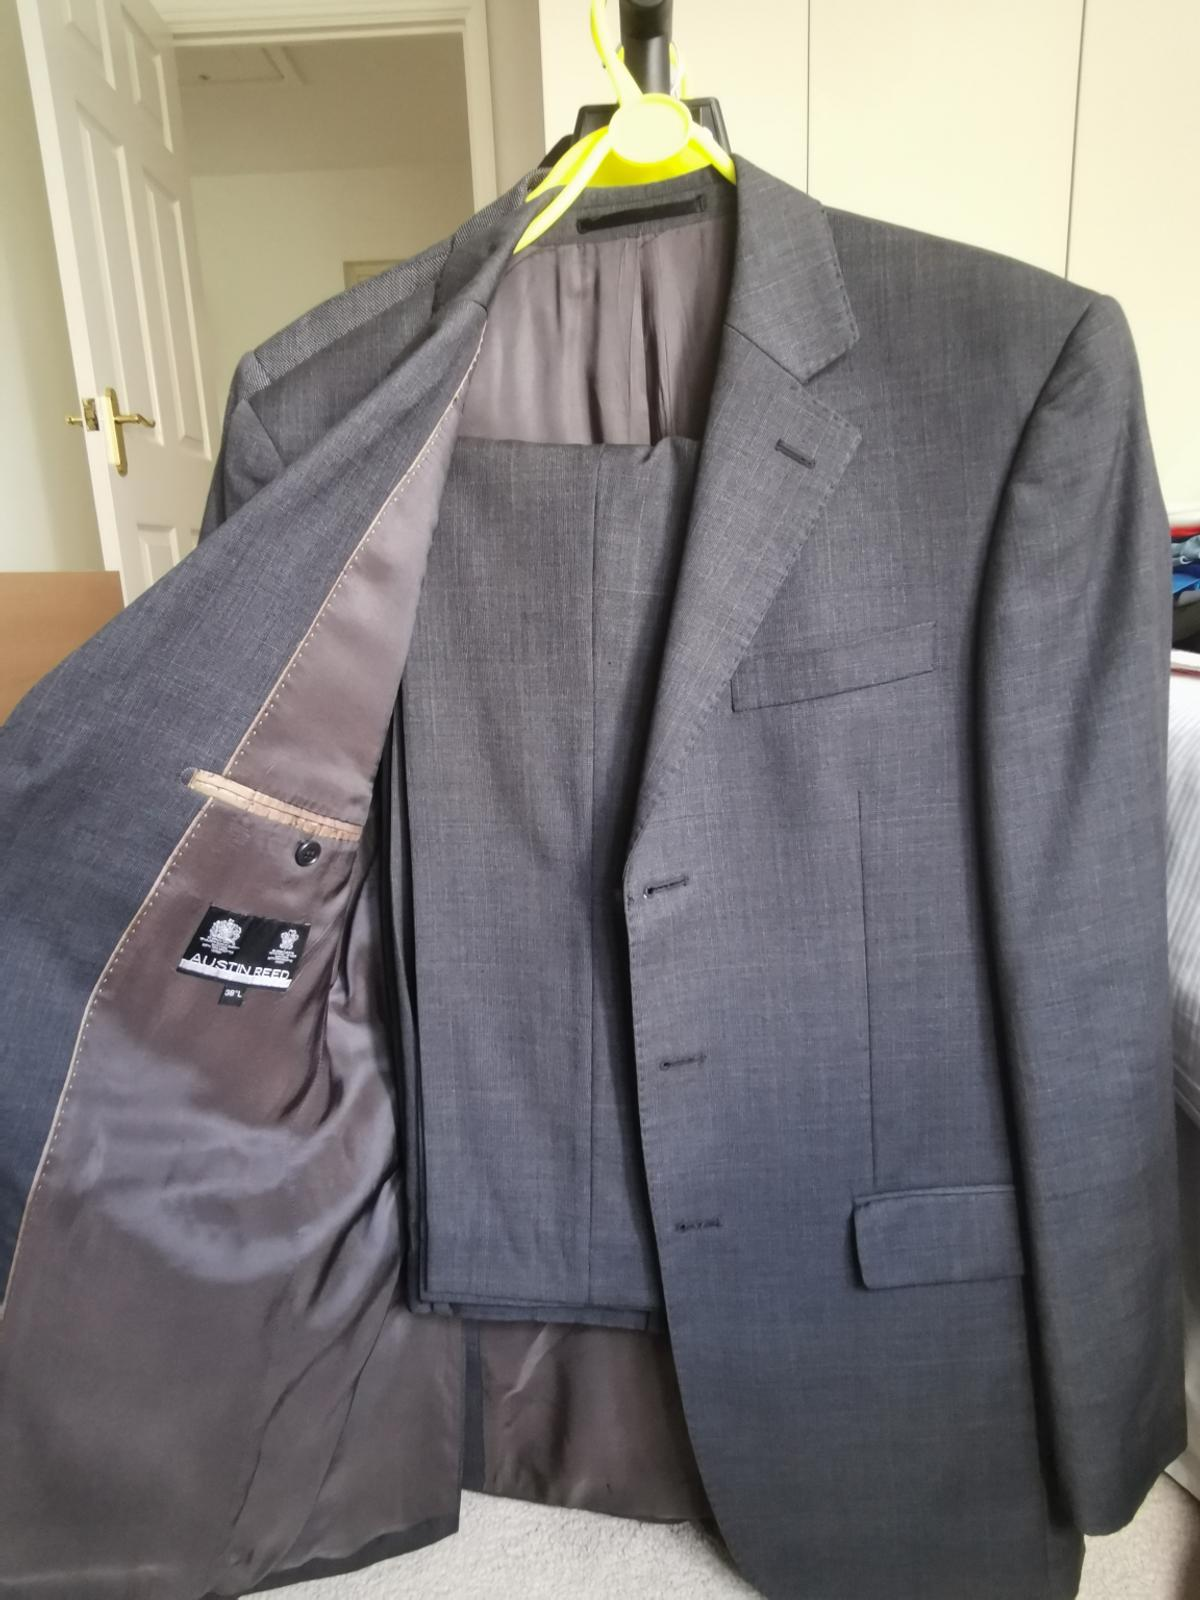 Austin Reed Suit Grey Chocolate Men S In Ls15 Leeds For 40 00 For Sale Shpock